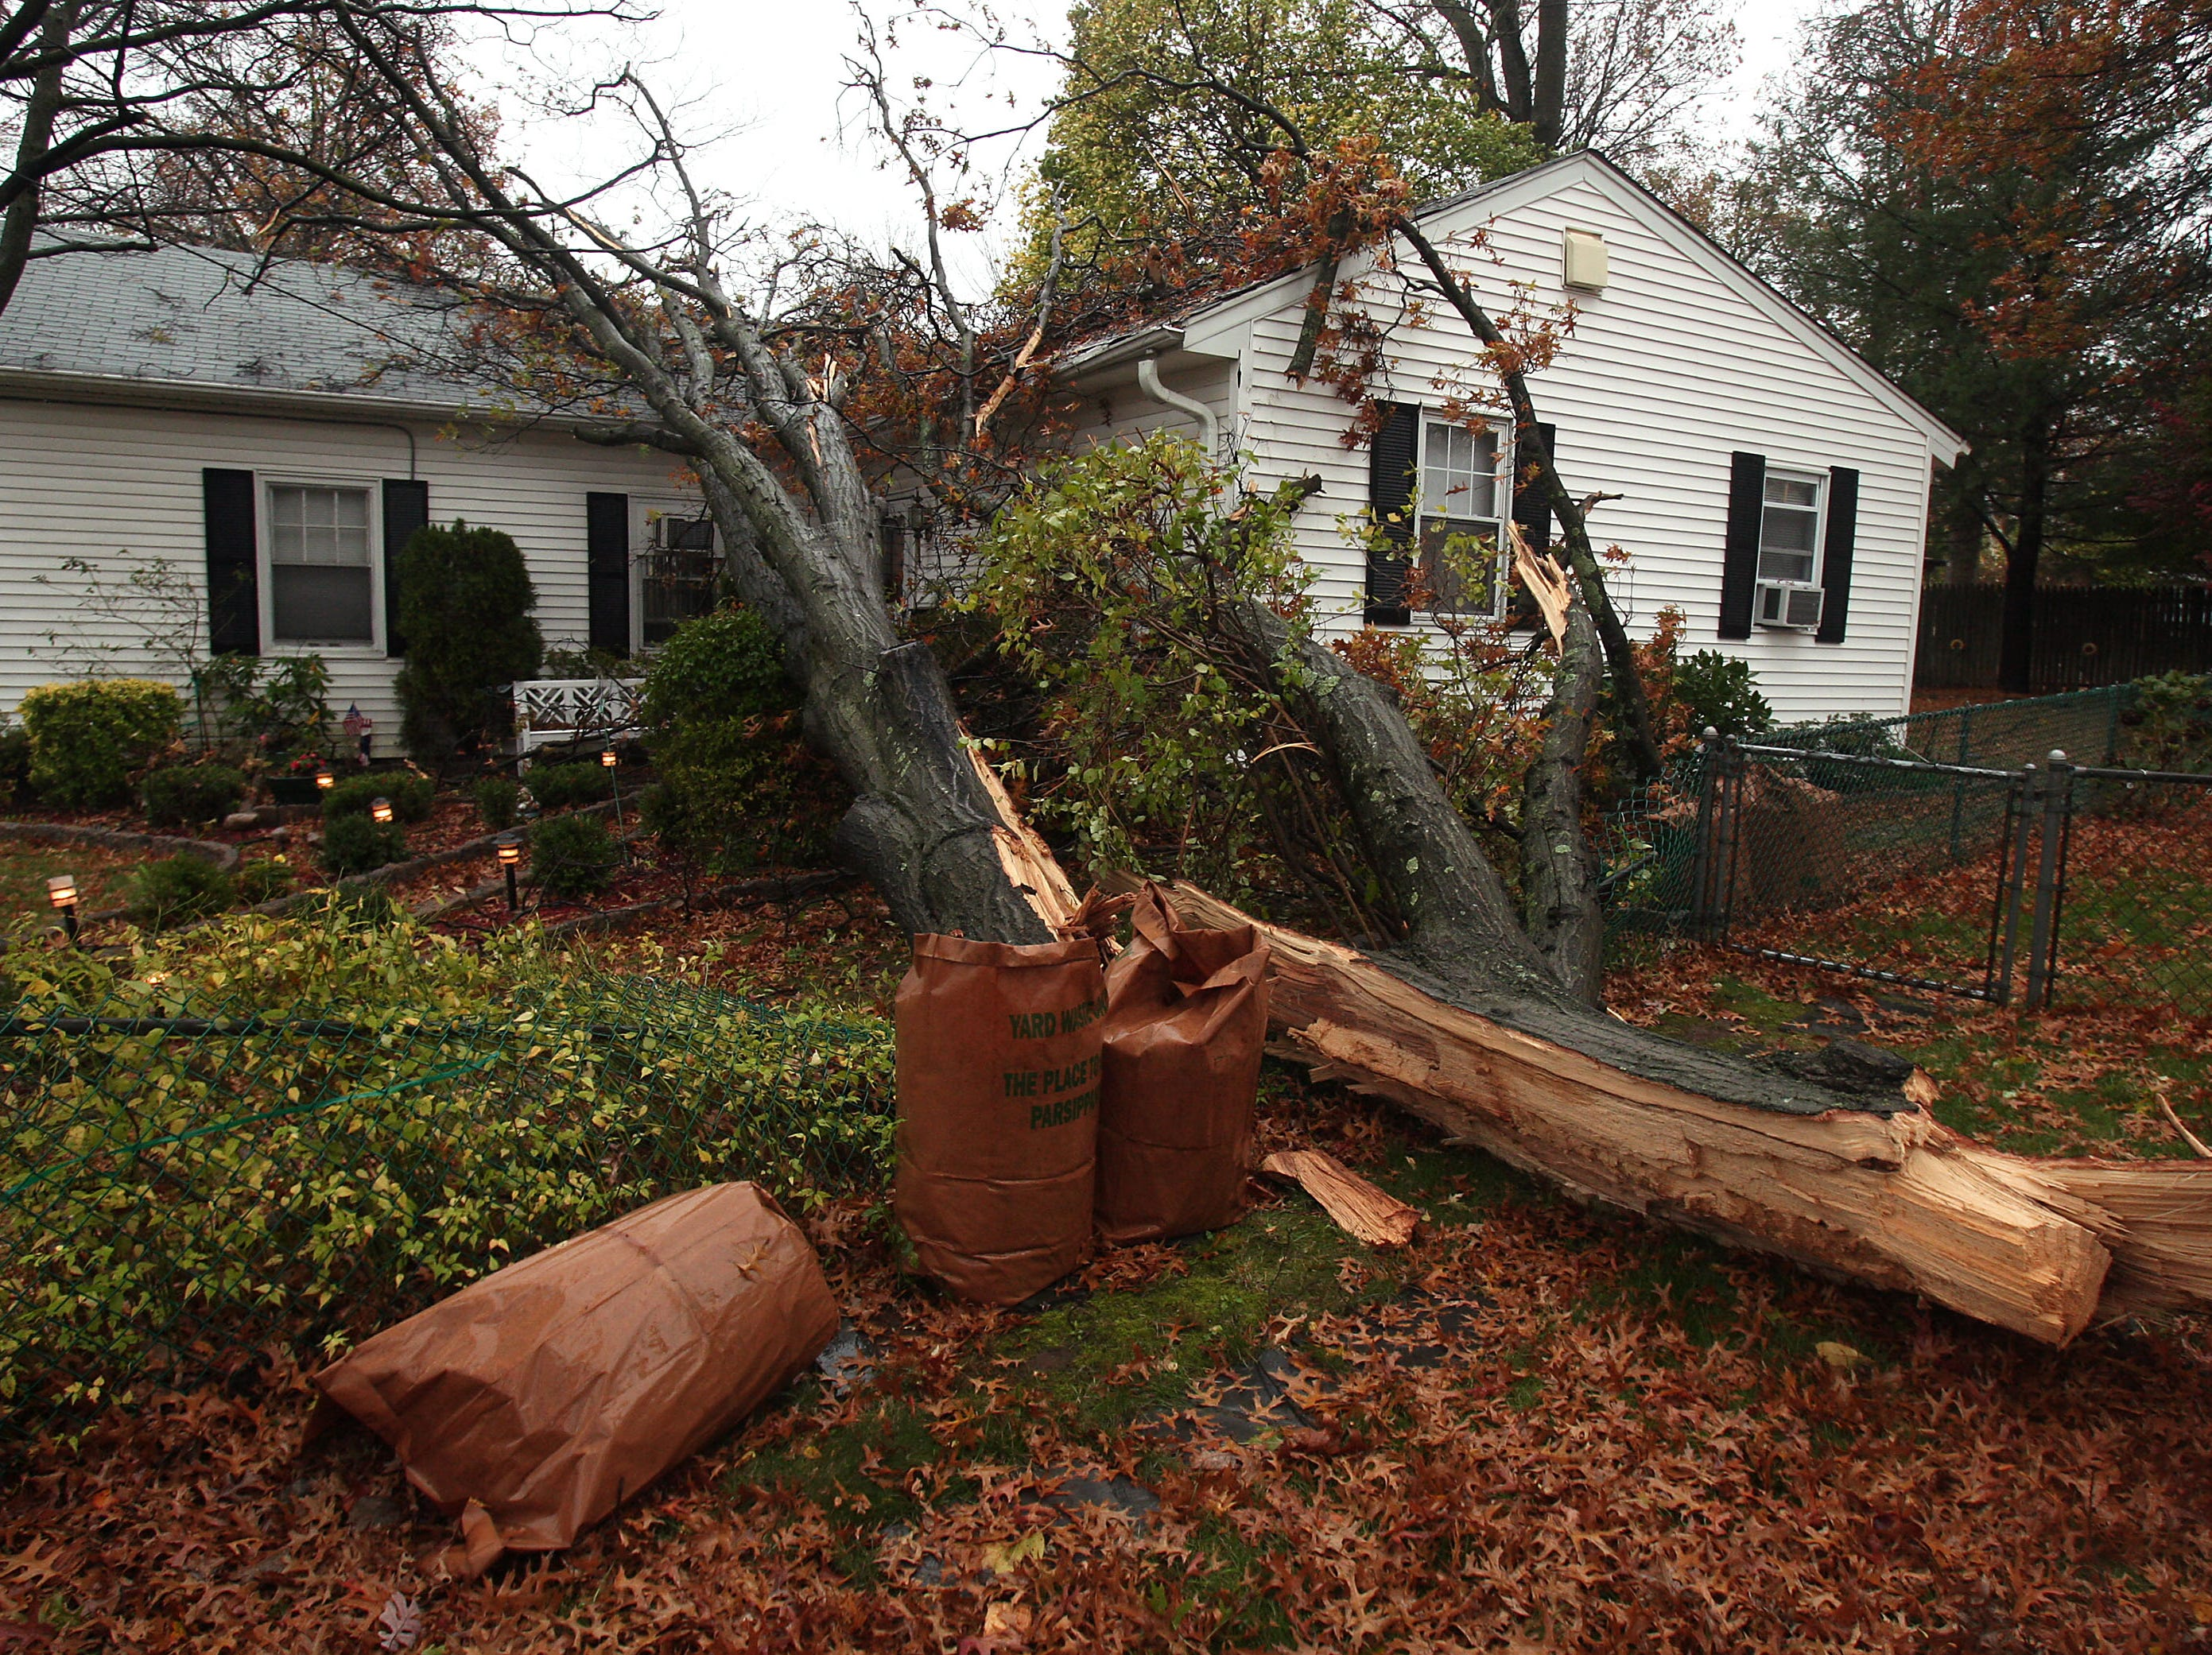 Parsippany, NJ-- October 29, 2012--A large tree fell due to high winds from Hurricane Sandy, crashing into a Flemington Drive home. 